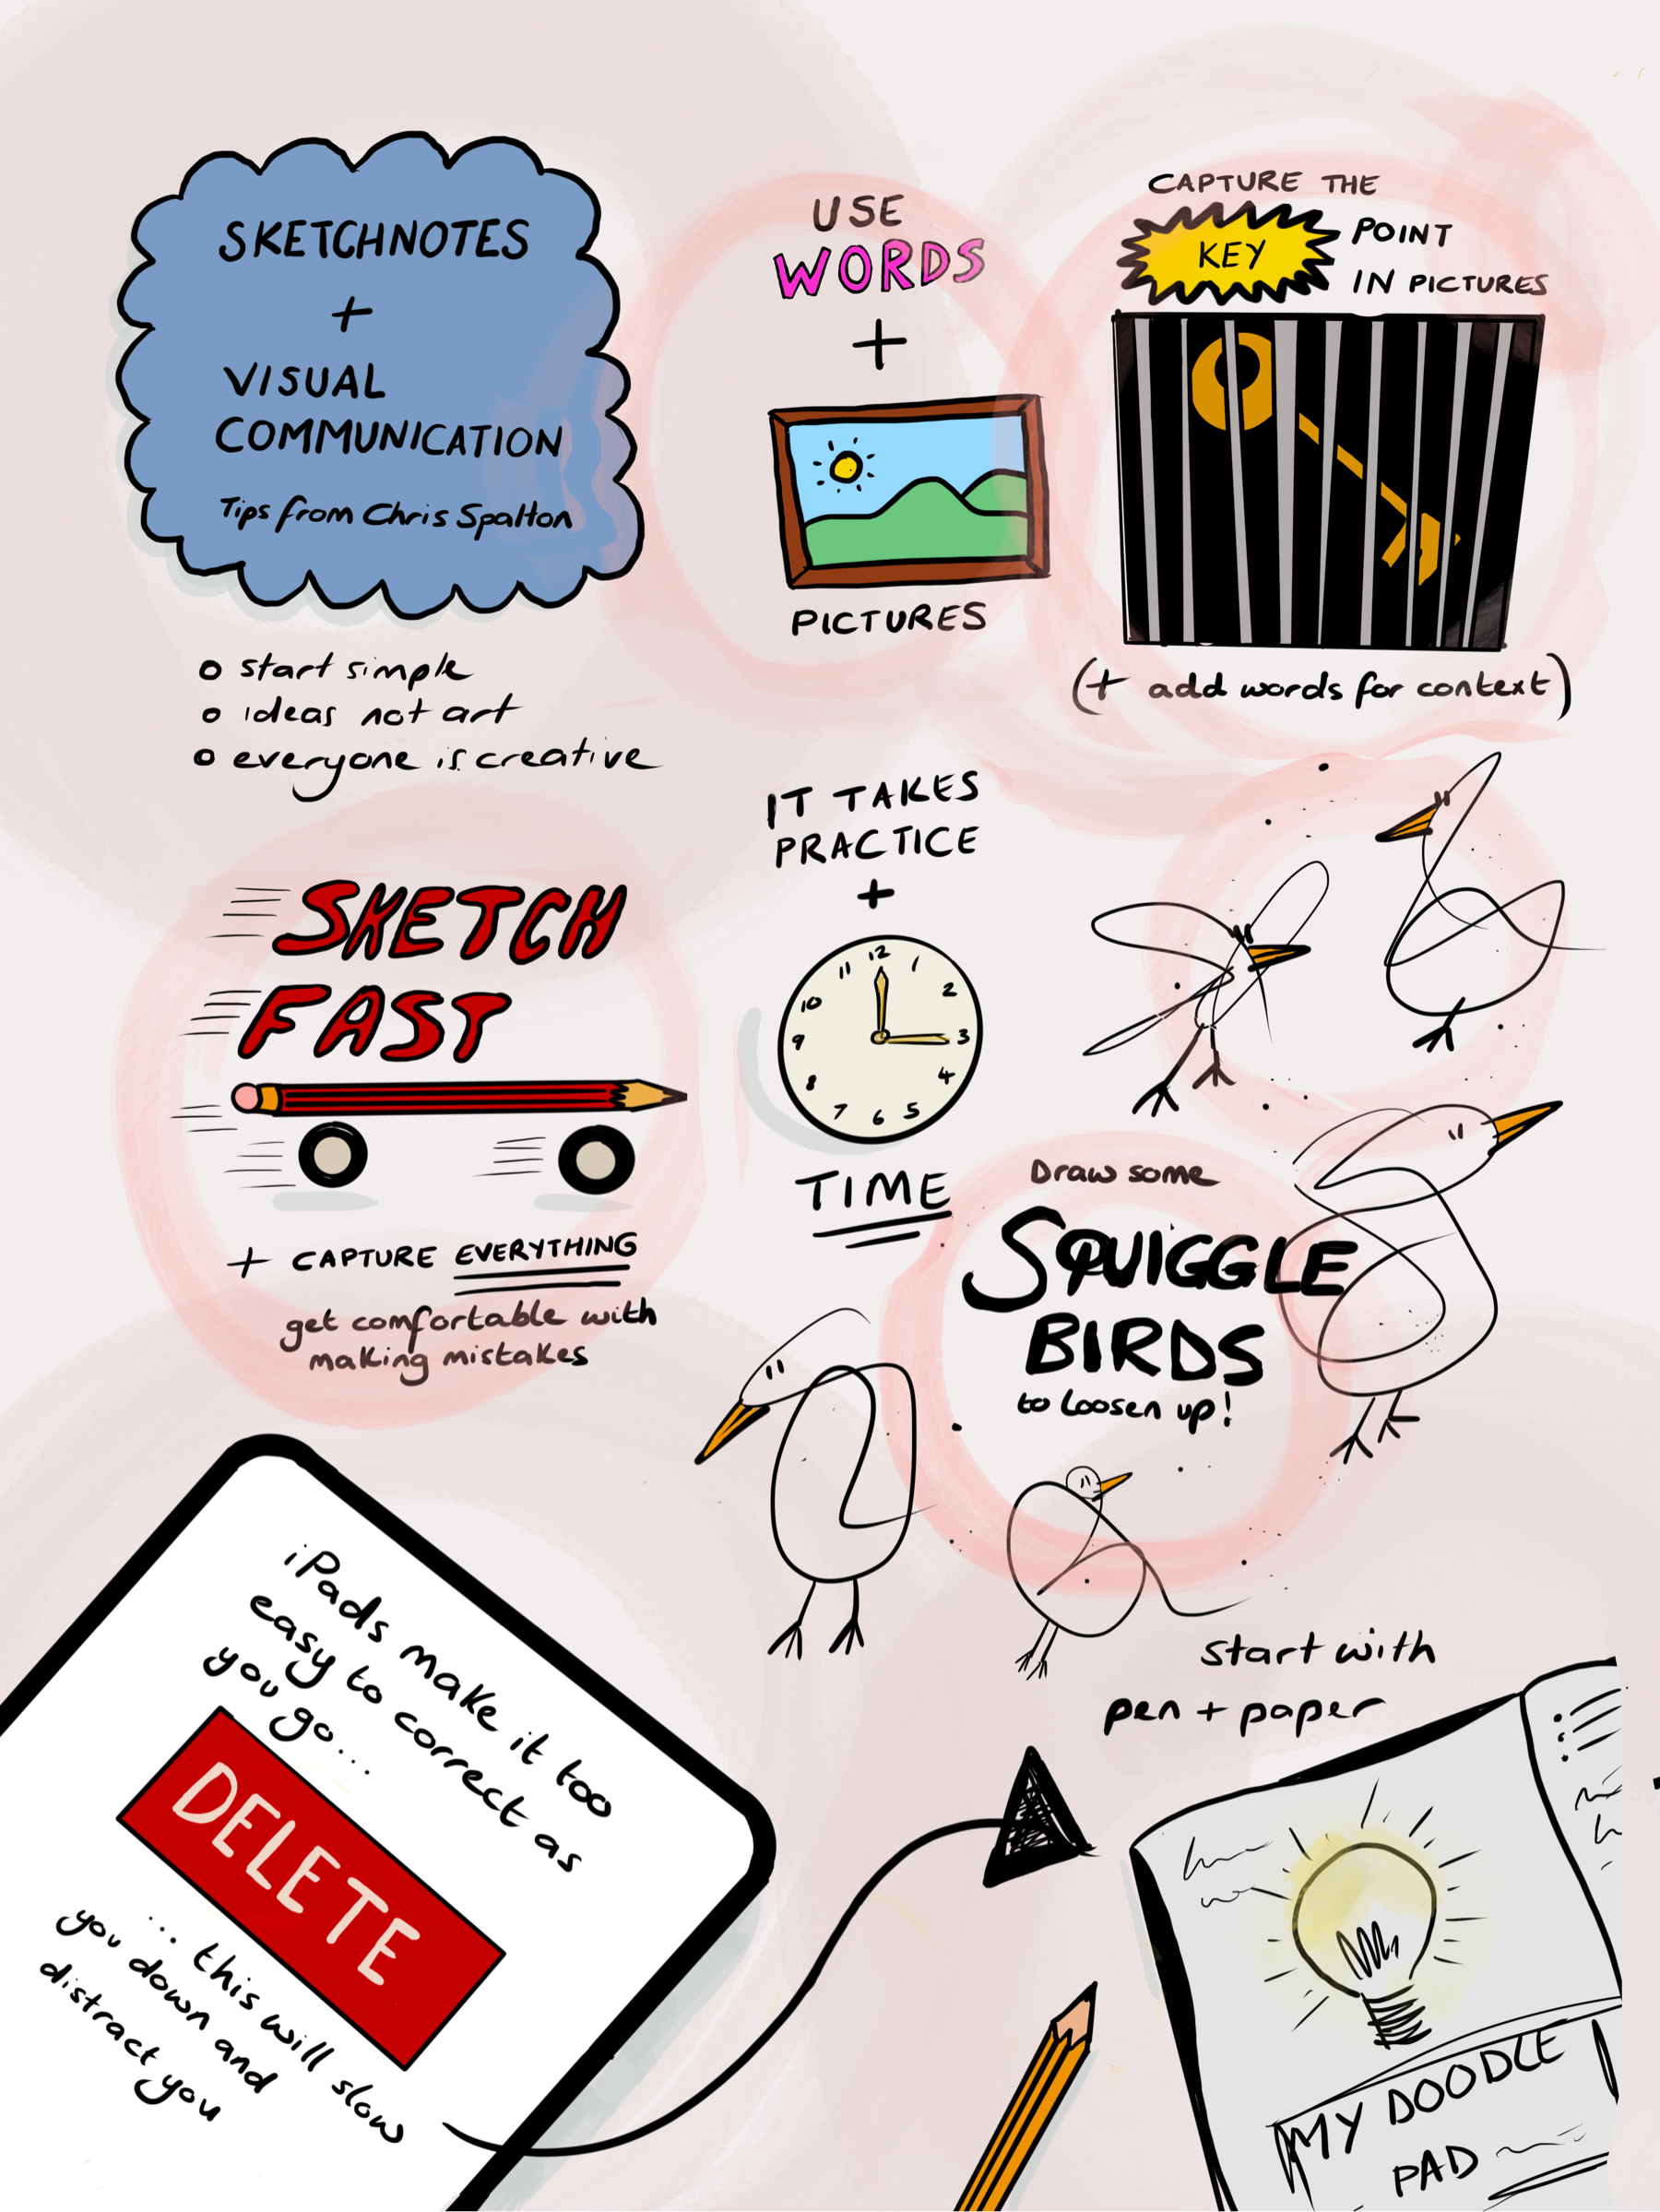 tips from Chris on how to sketchnote in sketchnote format